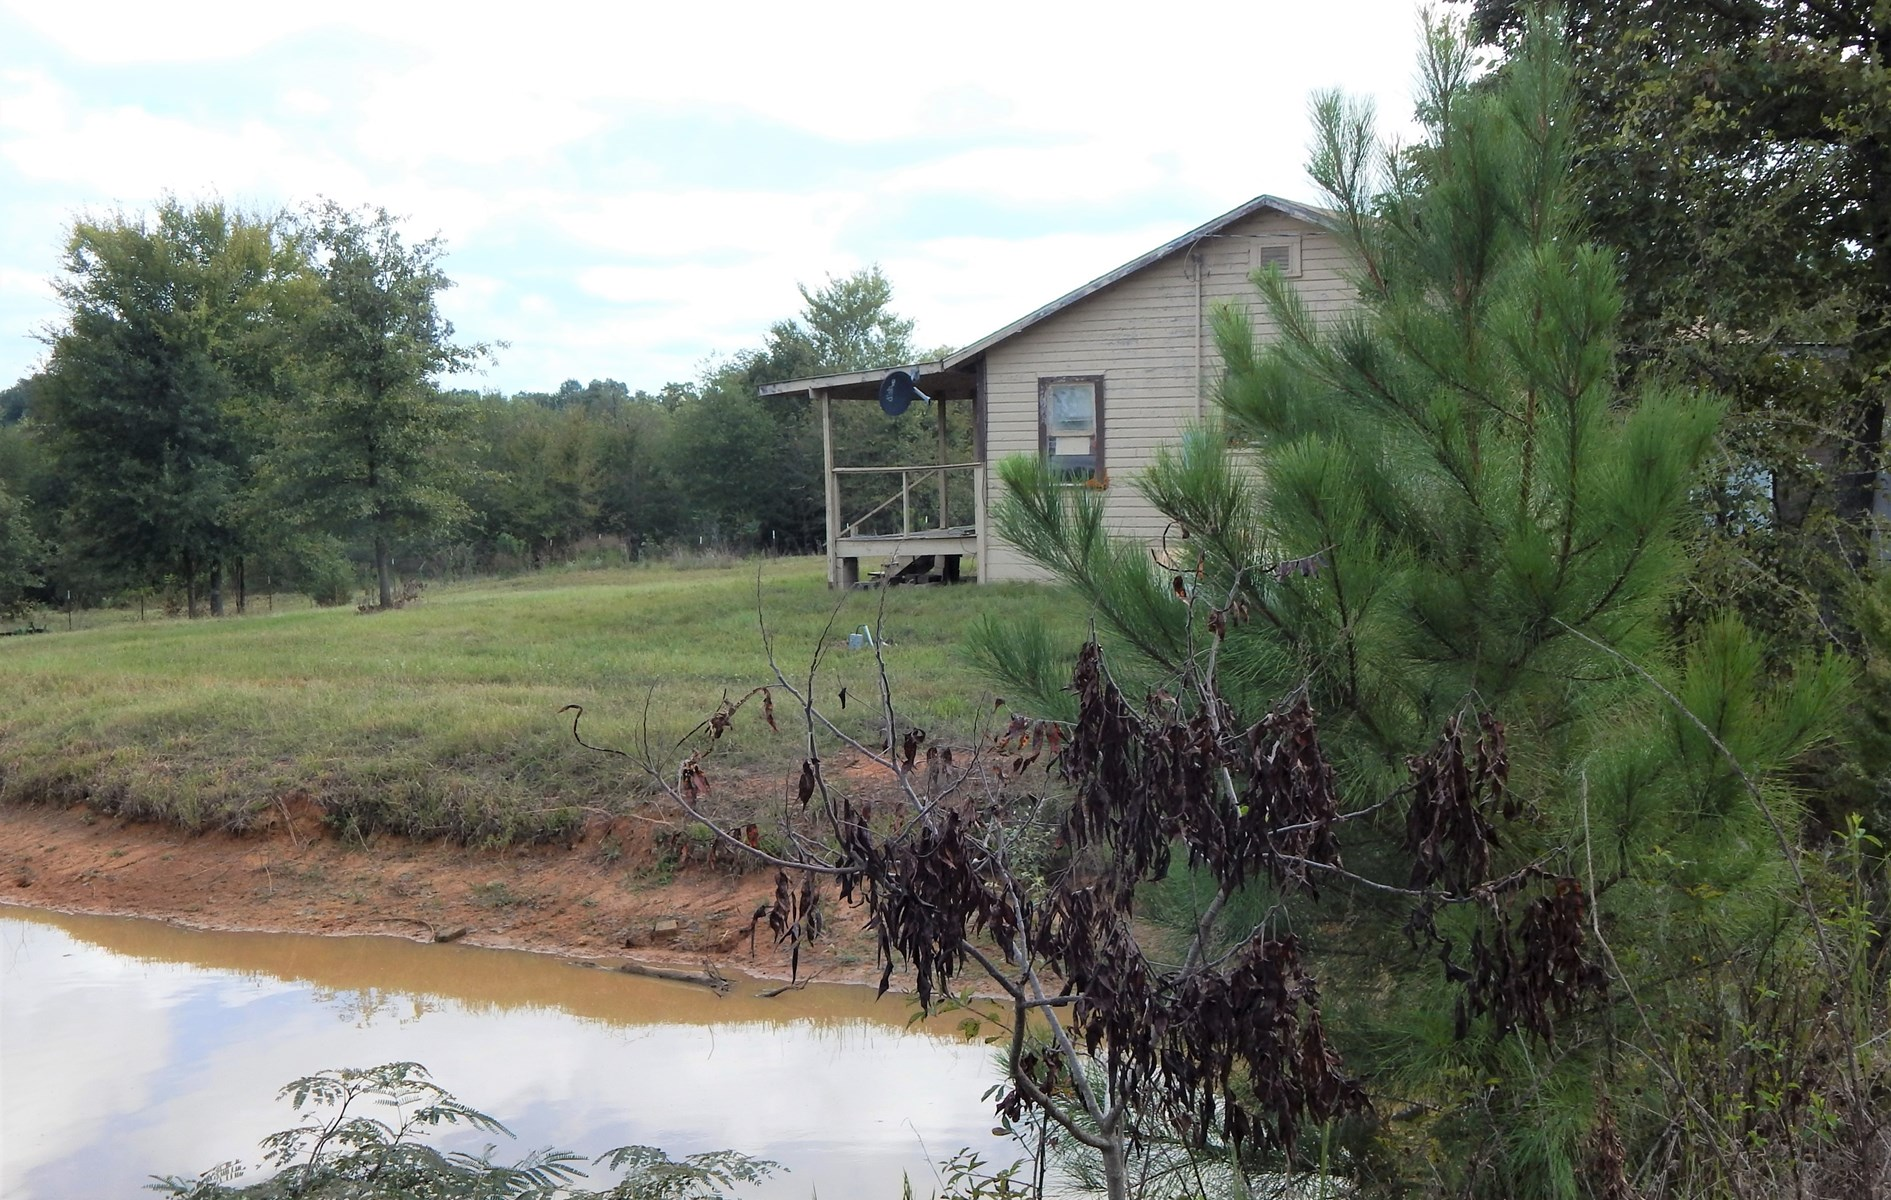 Country Home & Hunting Property For Sale Powderly Texas